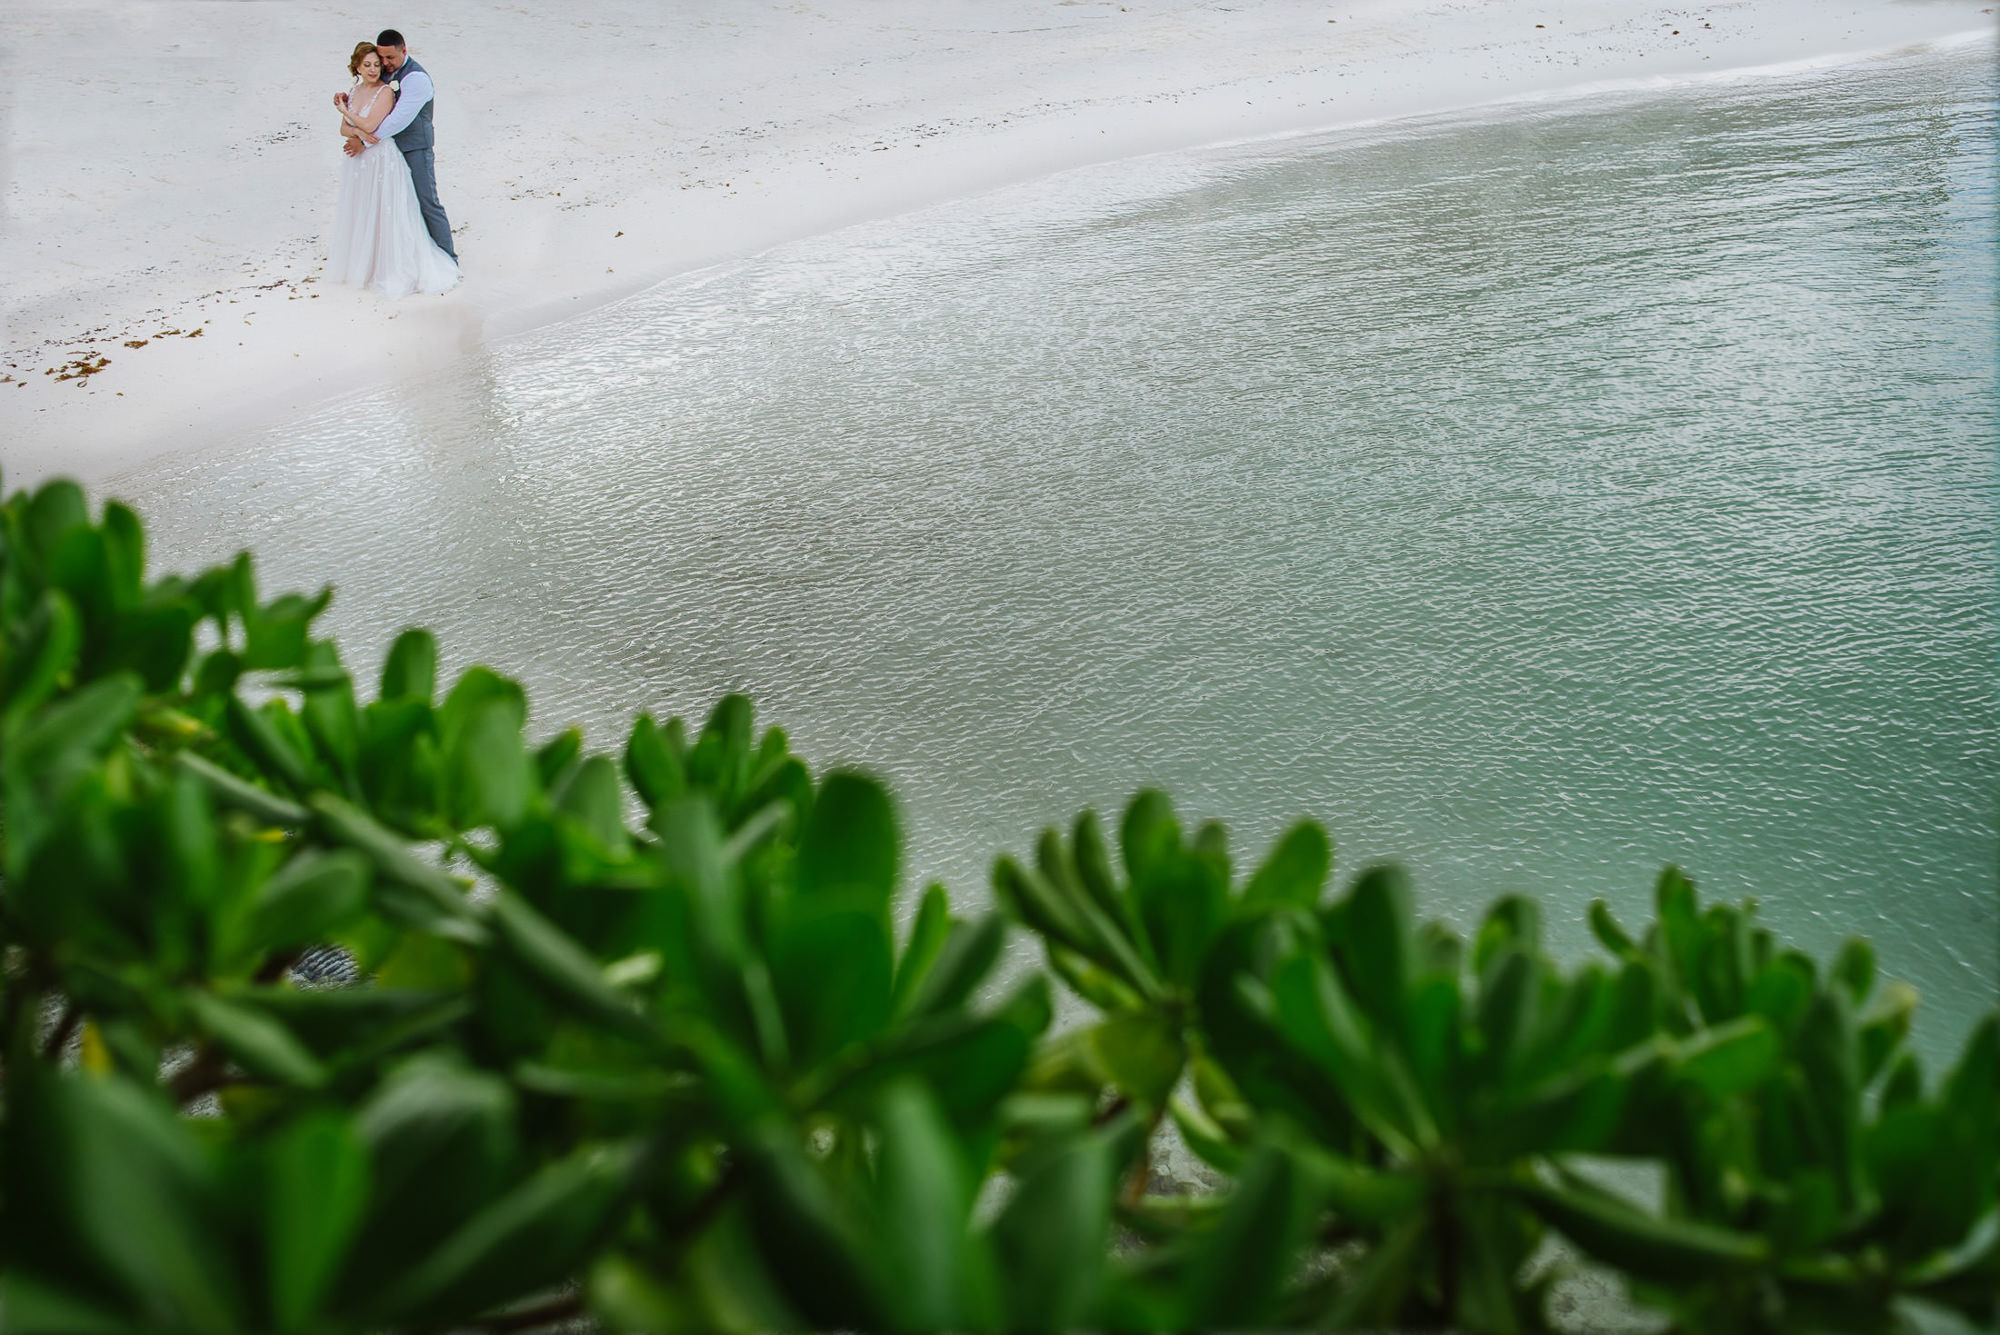 Bride and groom pose next to water on beach, by Citlalli Rico